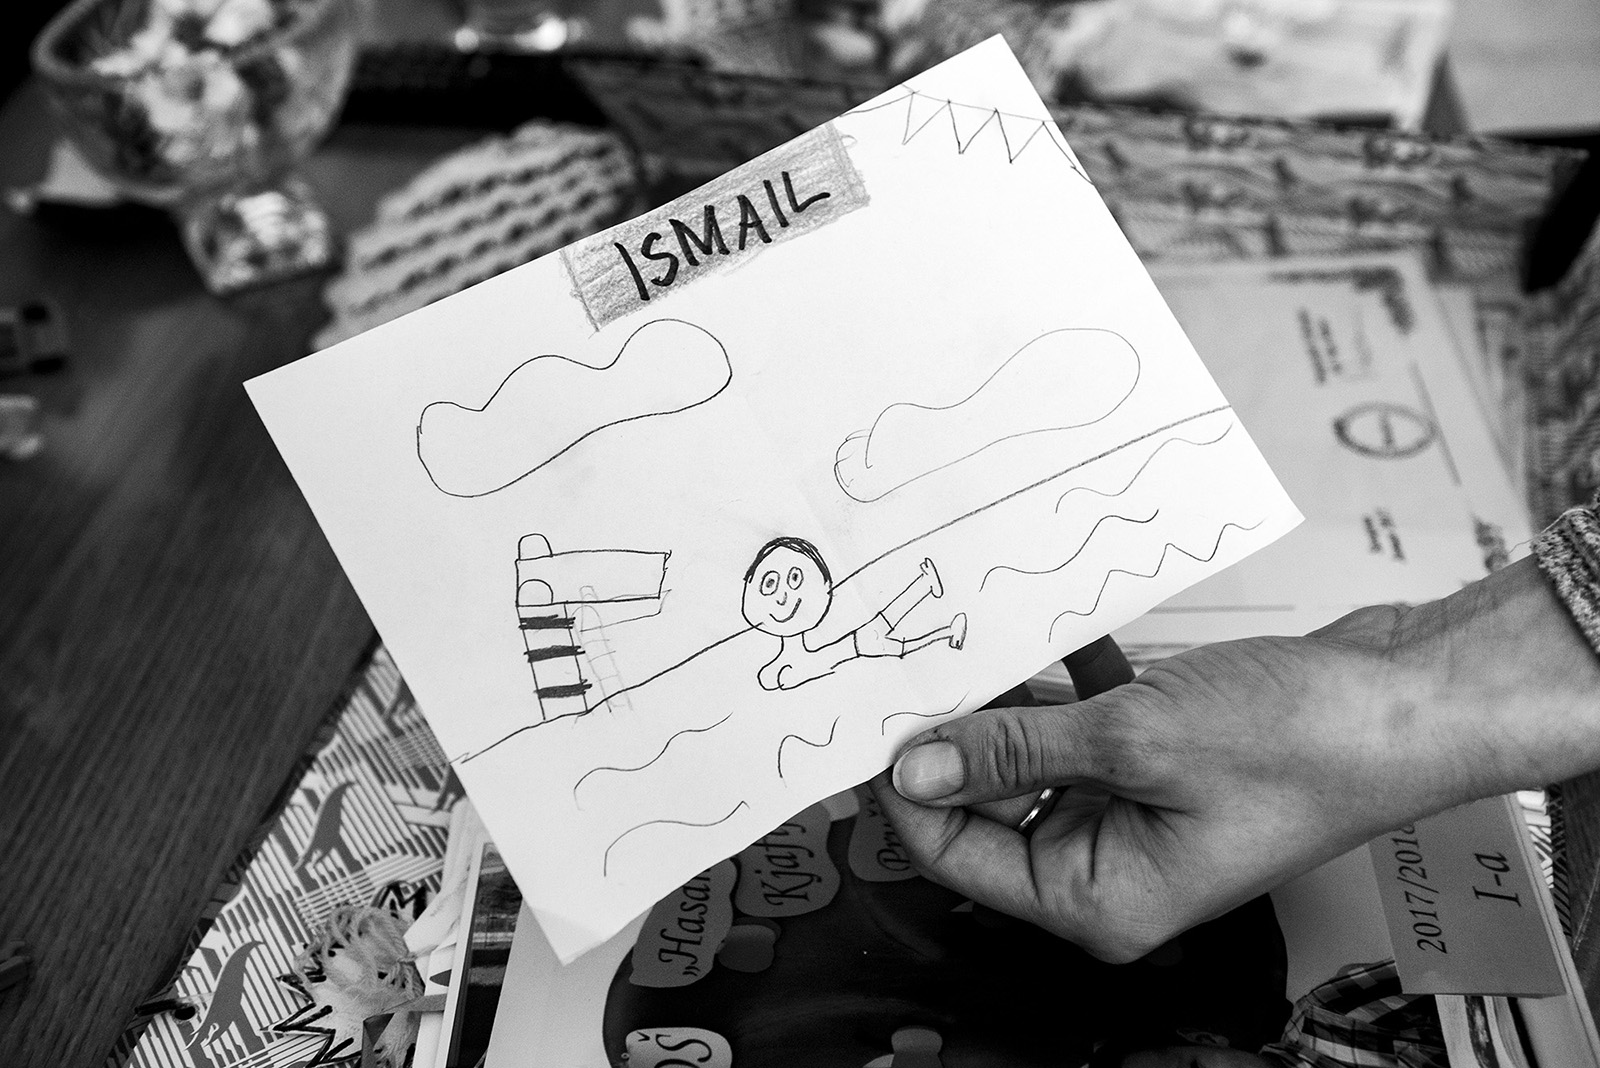 Elmina shows one of the drawings that Ismail got from a friend at school.